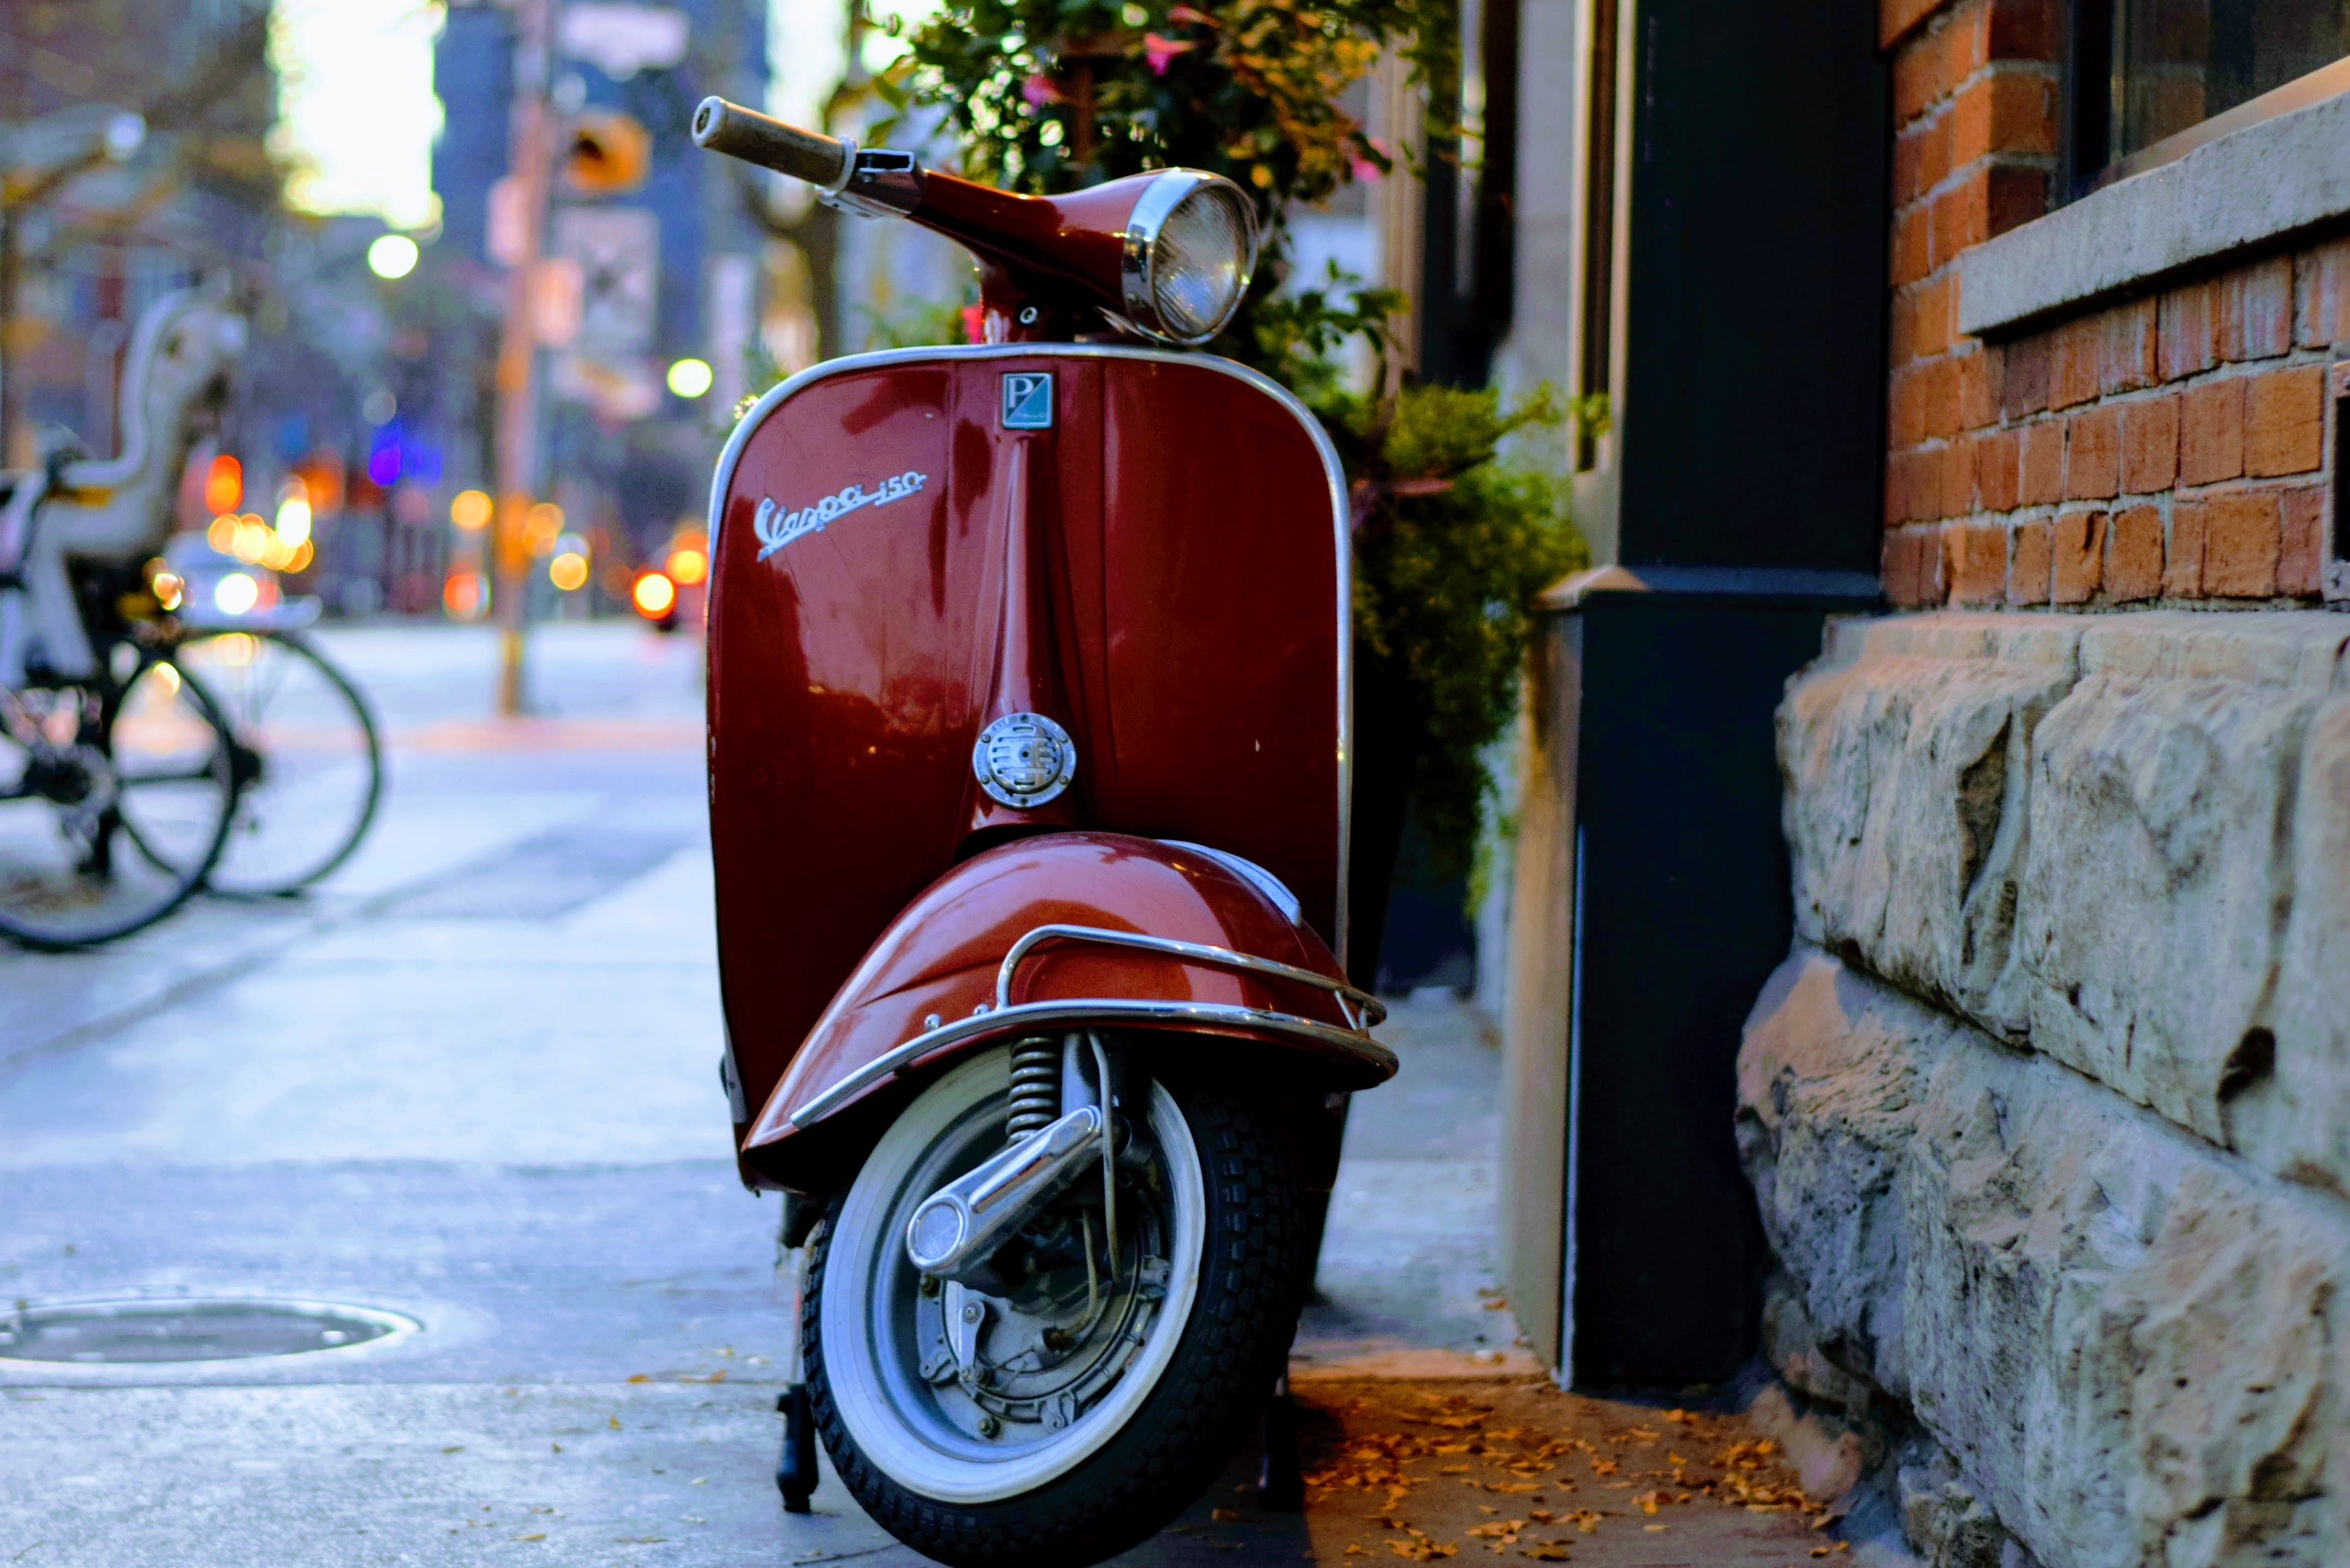 Red Piaggio Vespa Motor Scooter Parked Beside Gray and Red Concrete Building